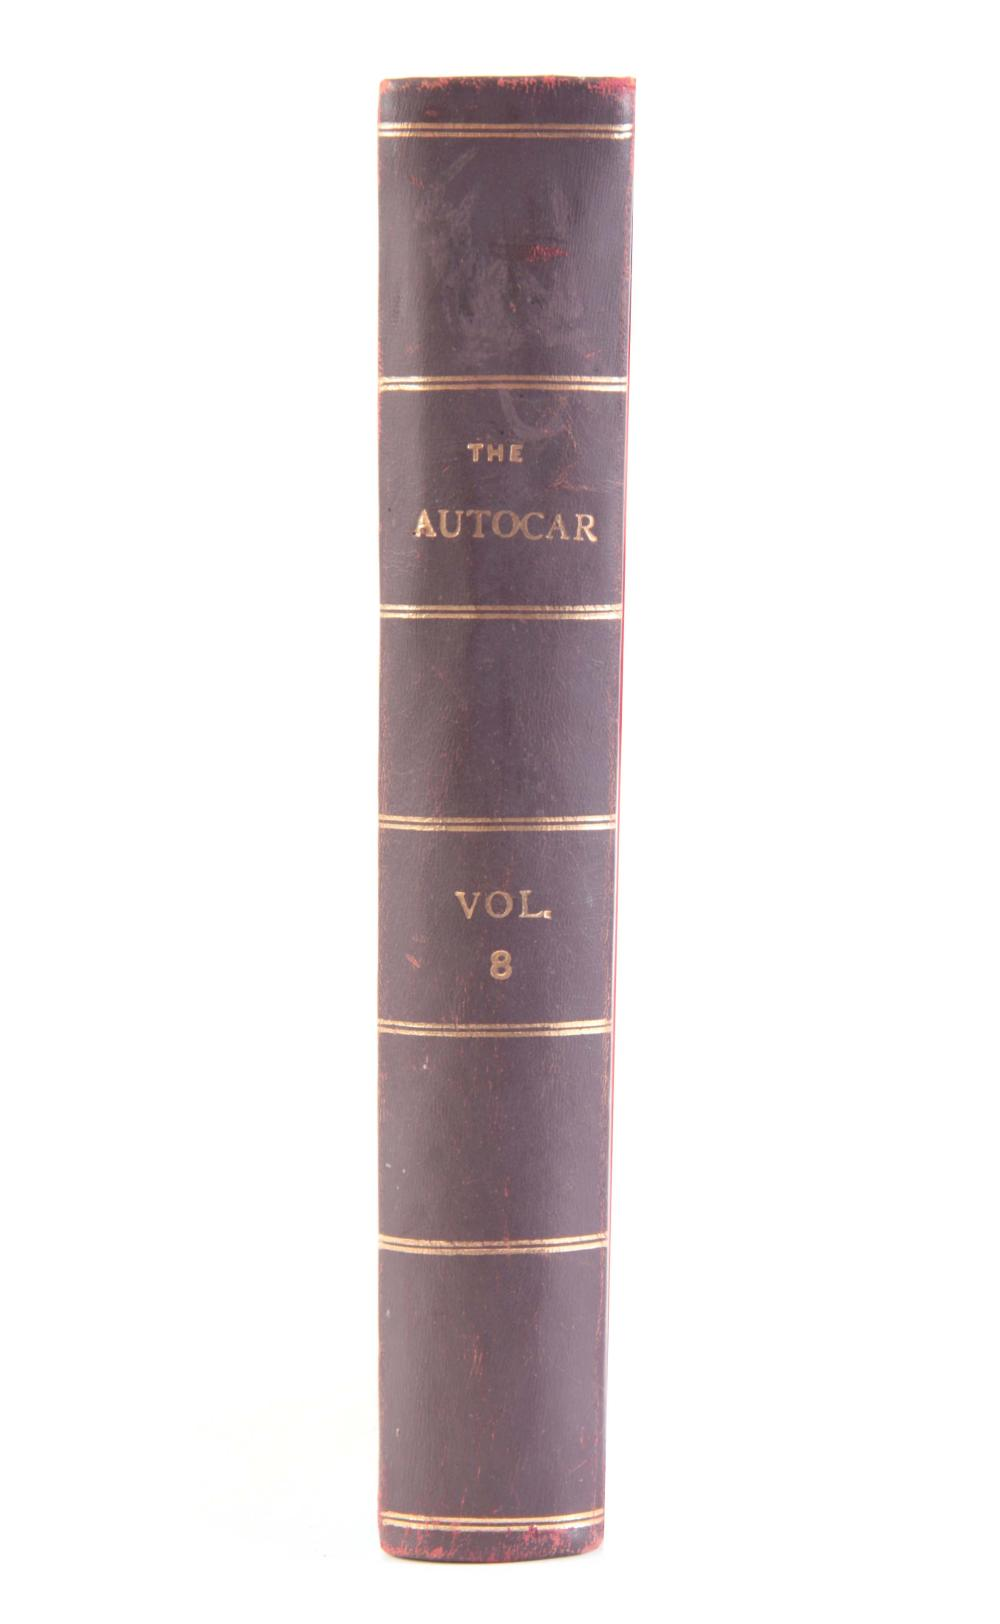 THE AUTOCAR 1902 VOLUME 8 by H. Walter Staner (42)